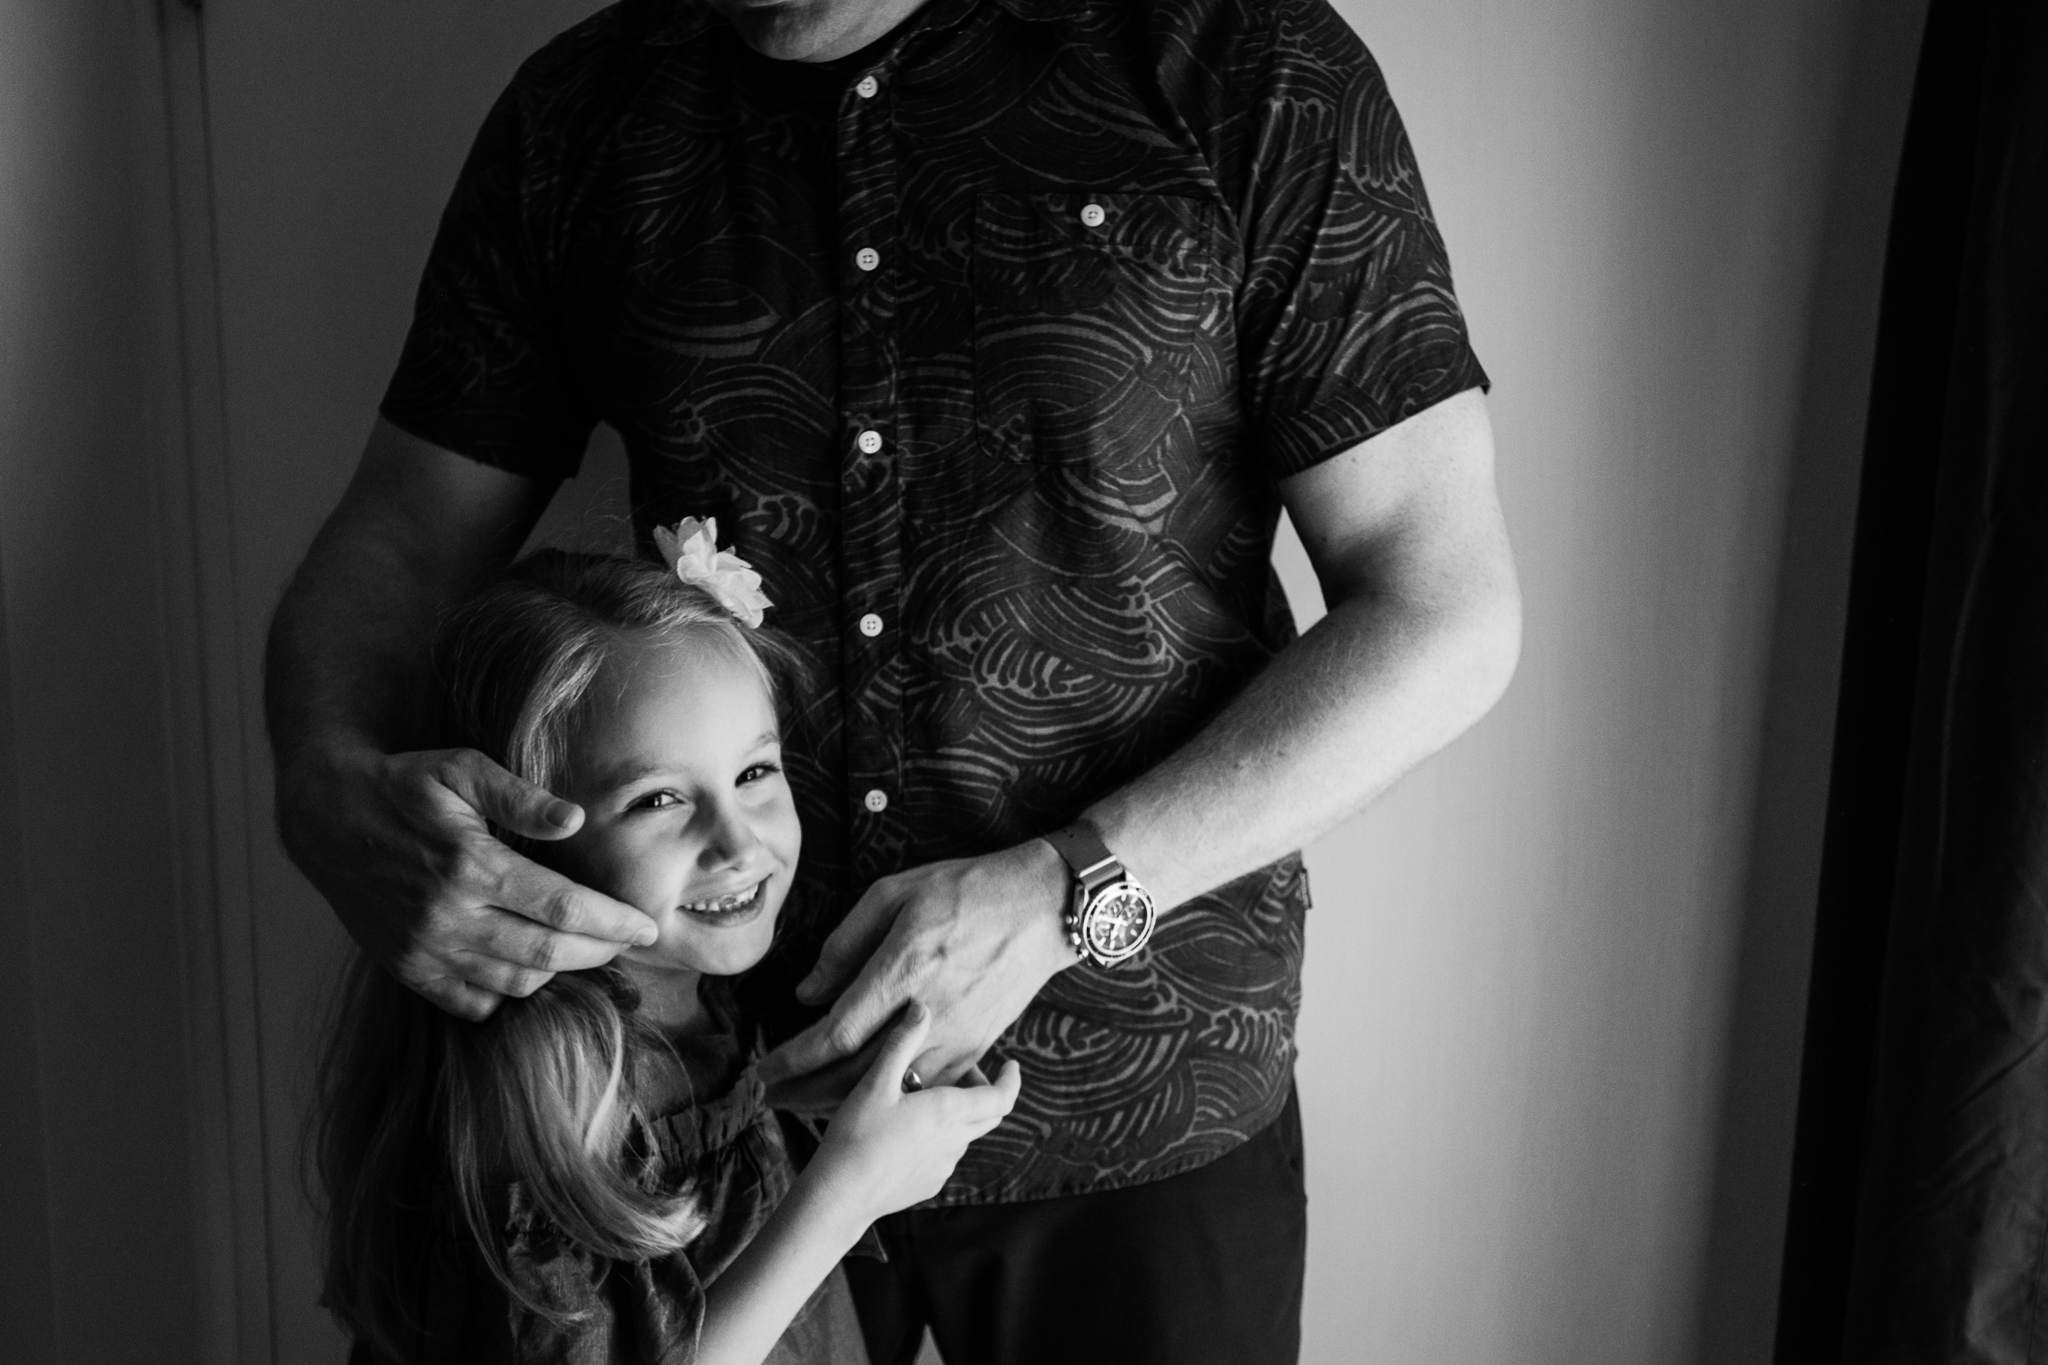 Father brushes daughter's hair back by Madison and Huntsville Alabama family photographer Rachel K Photo